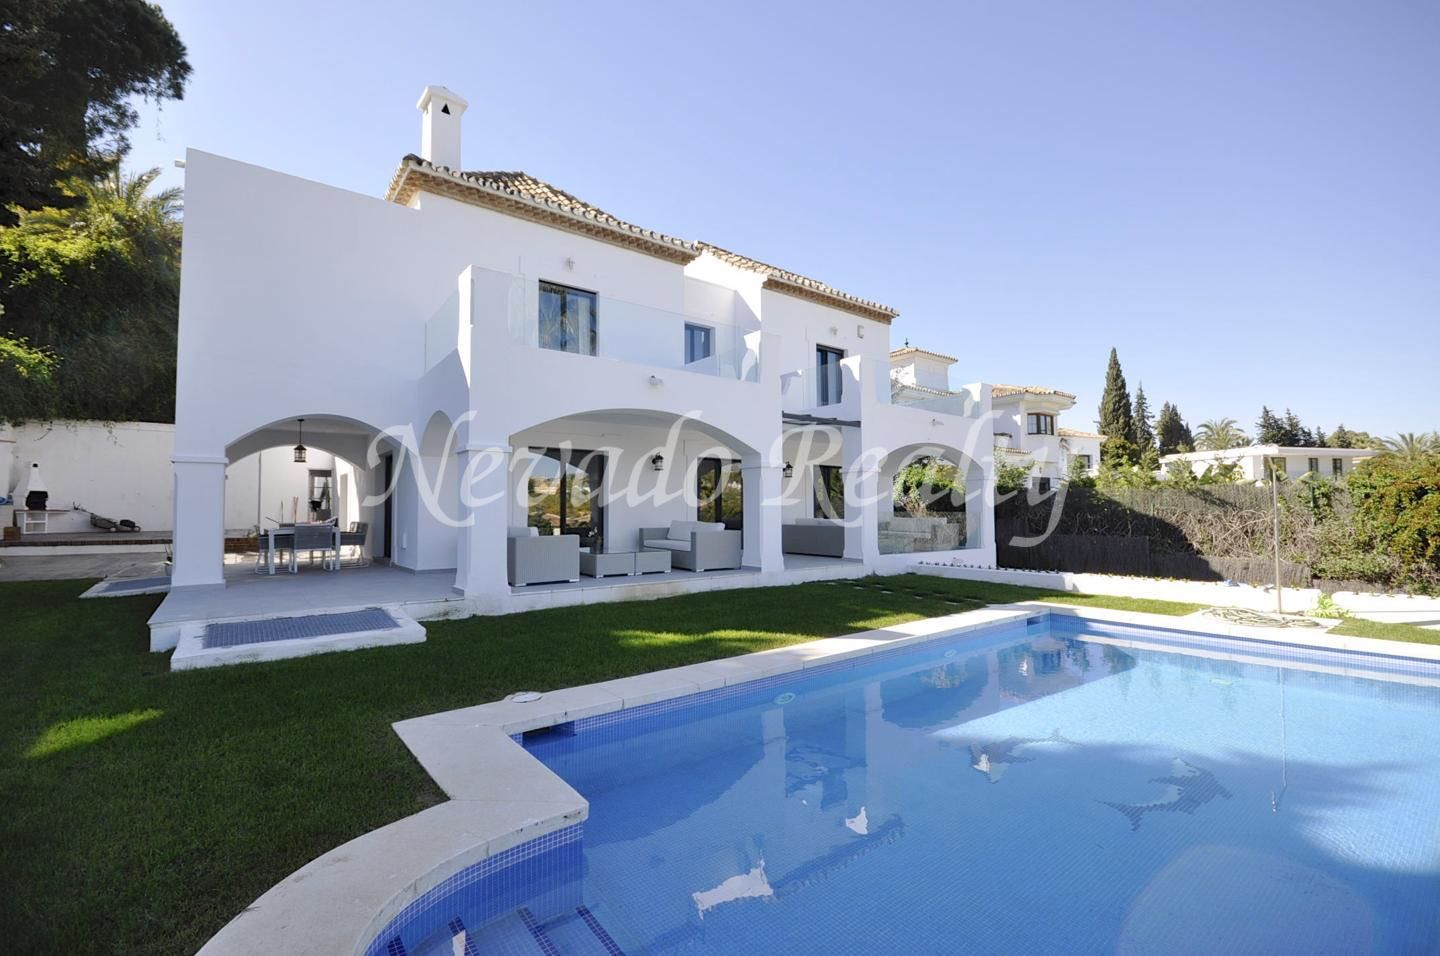 Villa for rent in the Centro Plaza area of Puerto Banús, Marbella